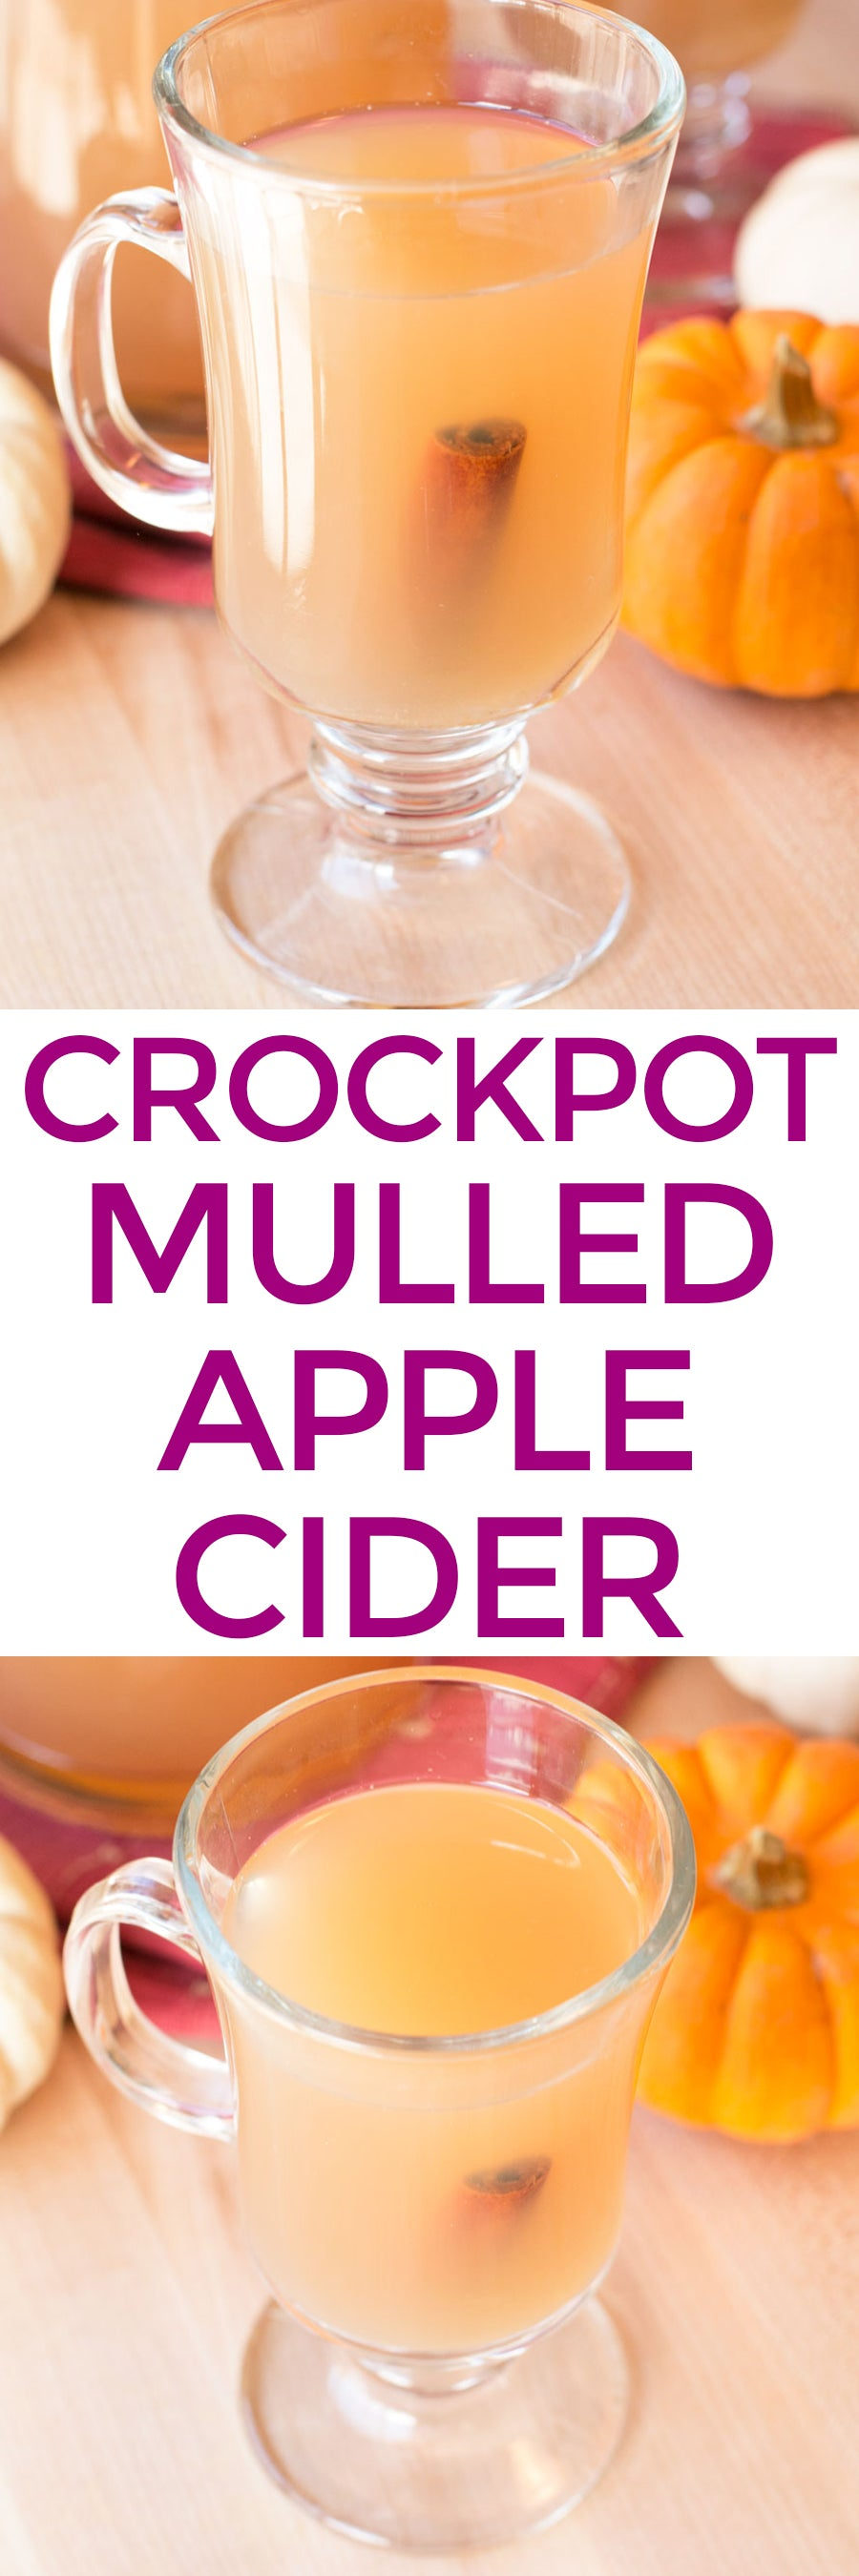 Boozy Crockpot Apple Cider | pigofthemonth.com #cocktail #fall #applecider